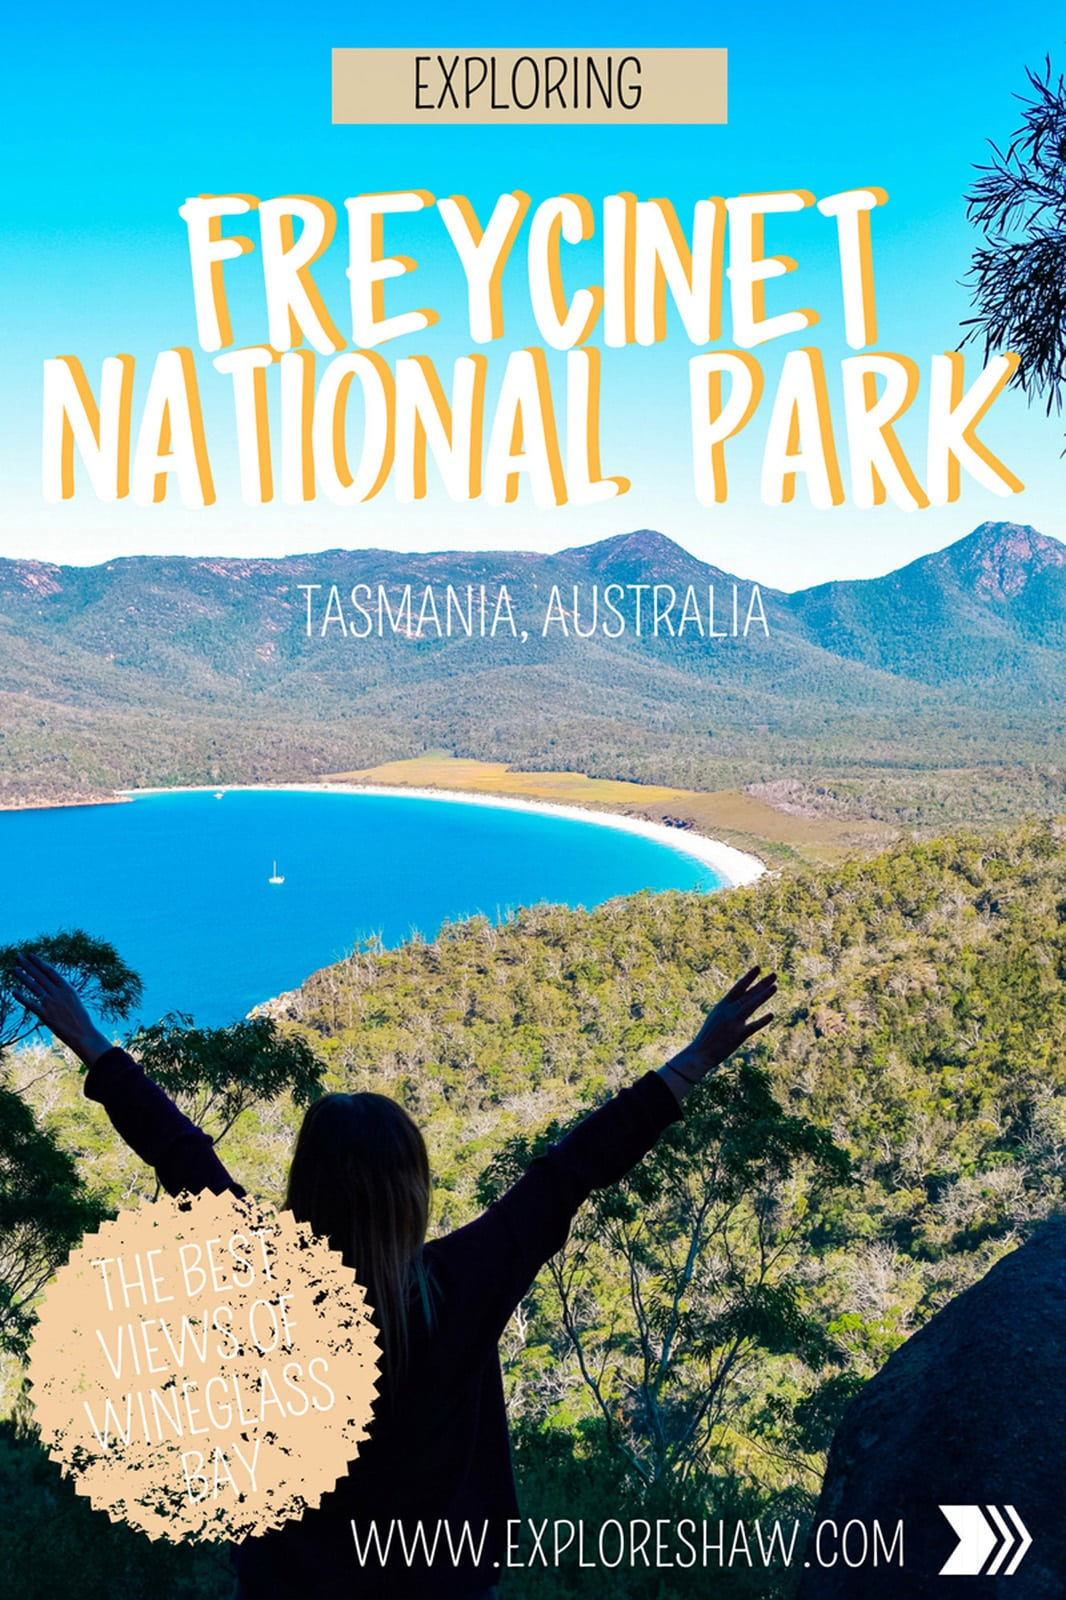 EXPLORING FREYCINET NATIONAL PARK